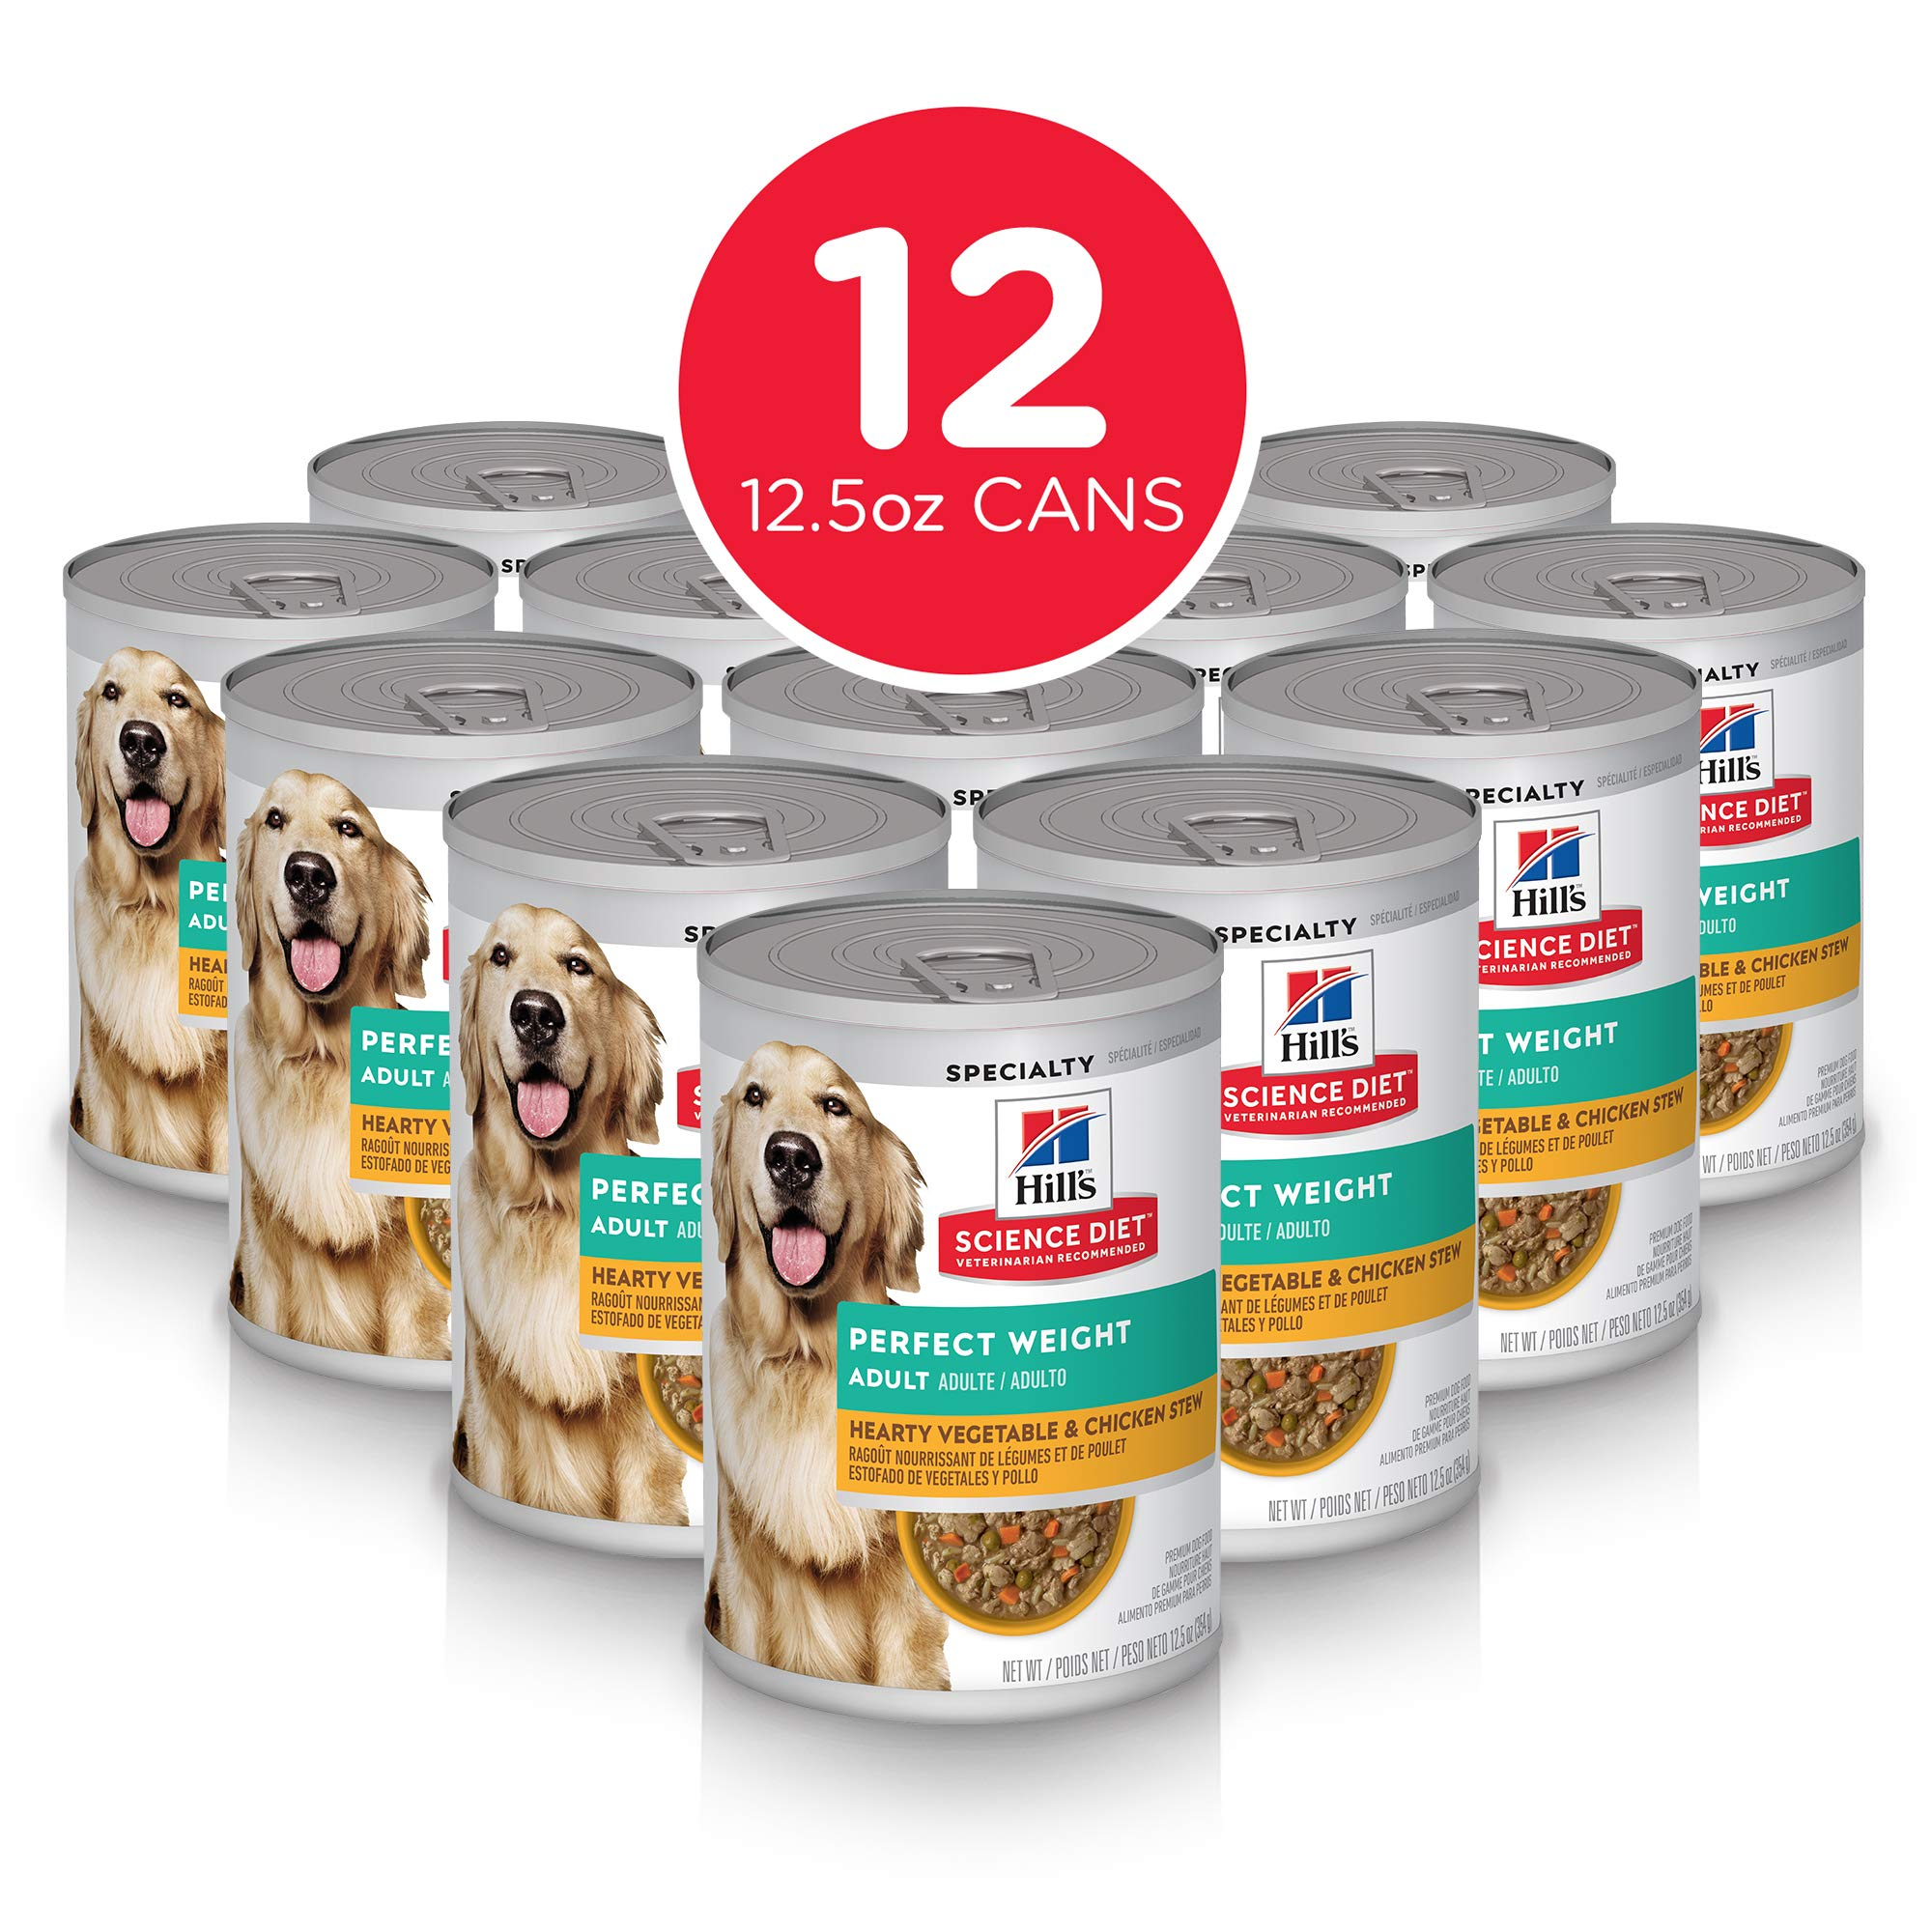 Hill's Science Diet Wet Dog Food, Adult, Perfect Weight for Weight Management, Hearty Vegetable & Chicken Stew Recipe, 12.5 oz Cans, 12-pack by Hill's Science Diet